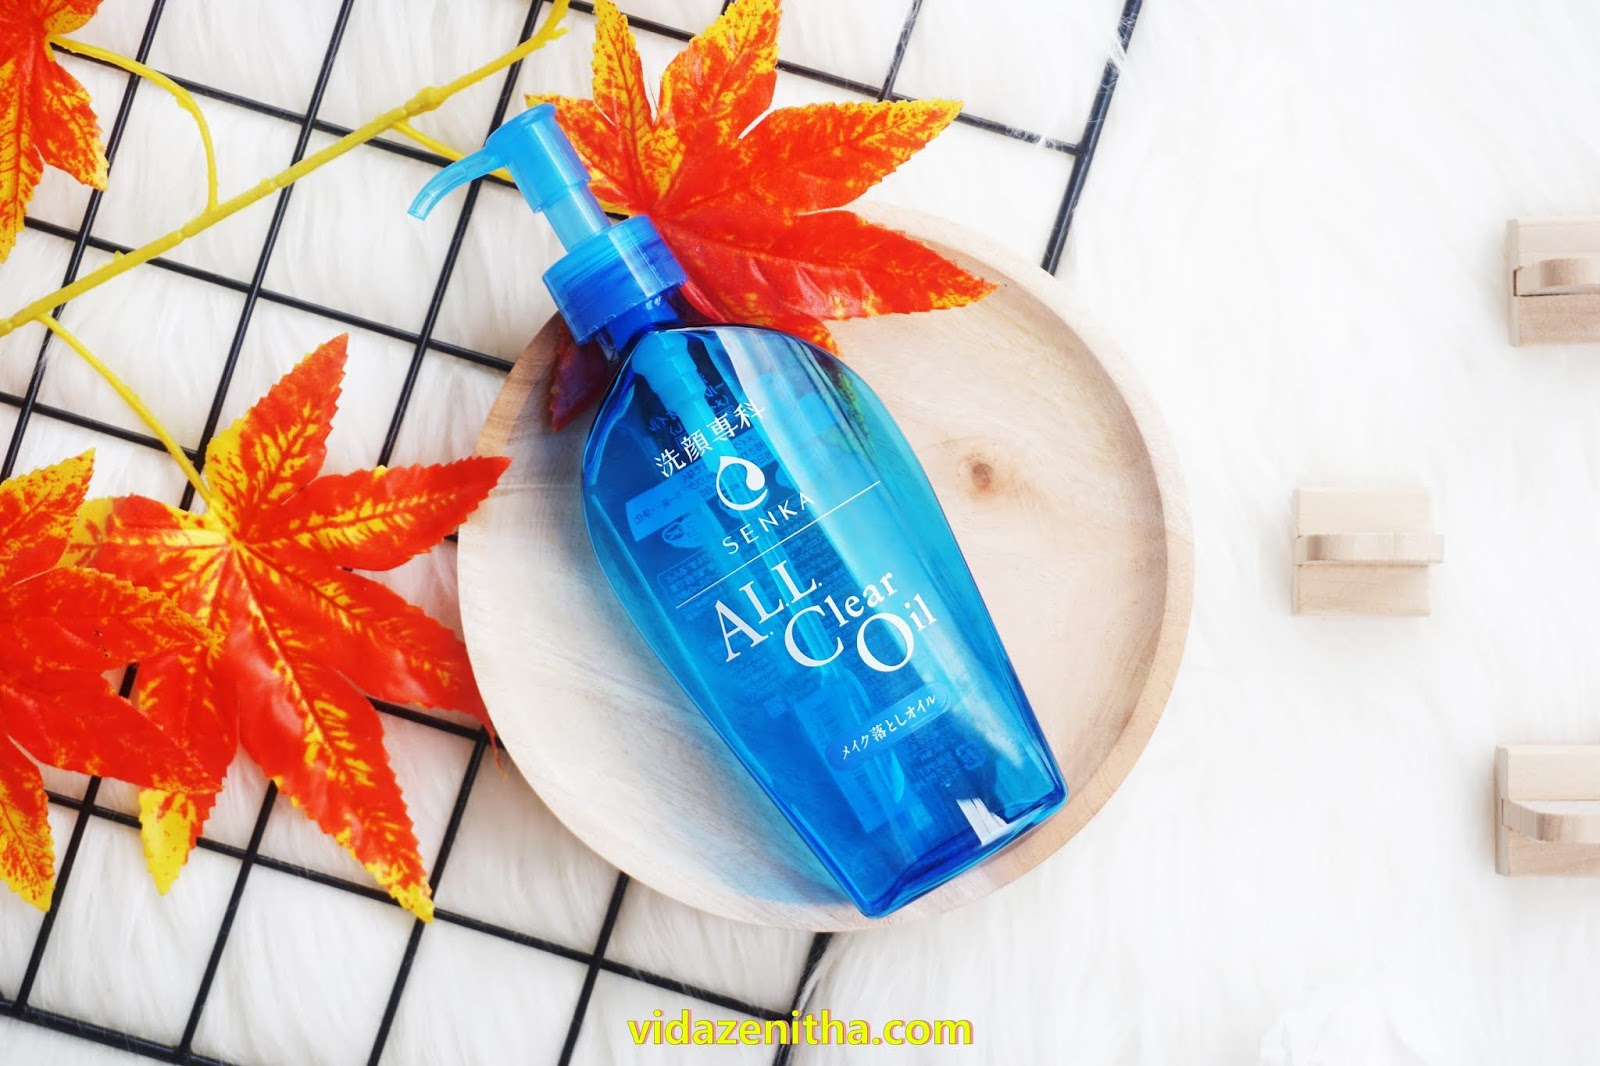 review senka cleansing oil senka all clear oil